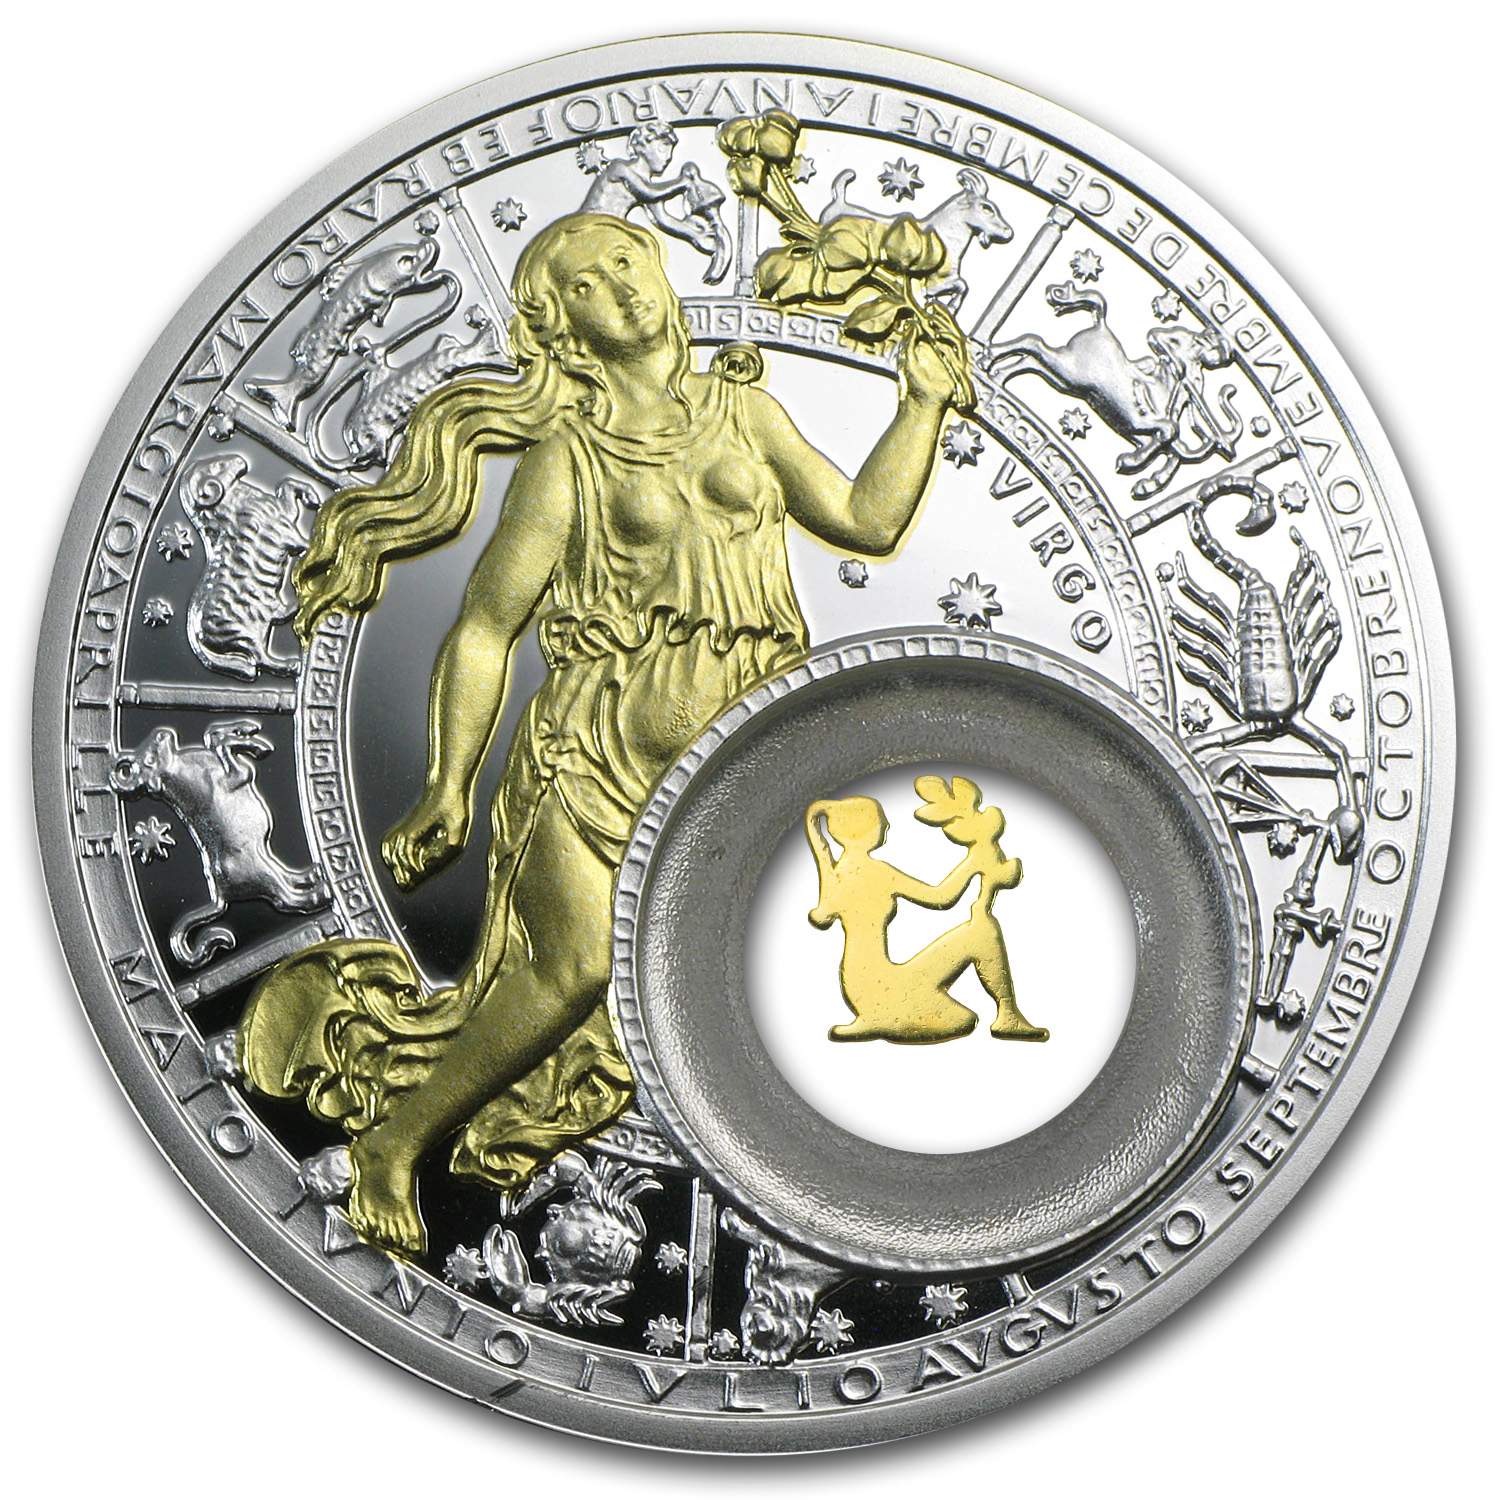 2013 Belarus Silver Proof 20 Rubles Zodiac Signs Virgo